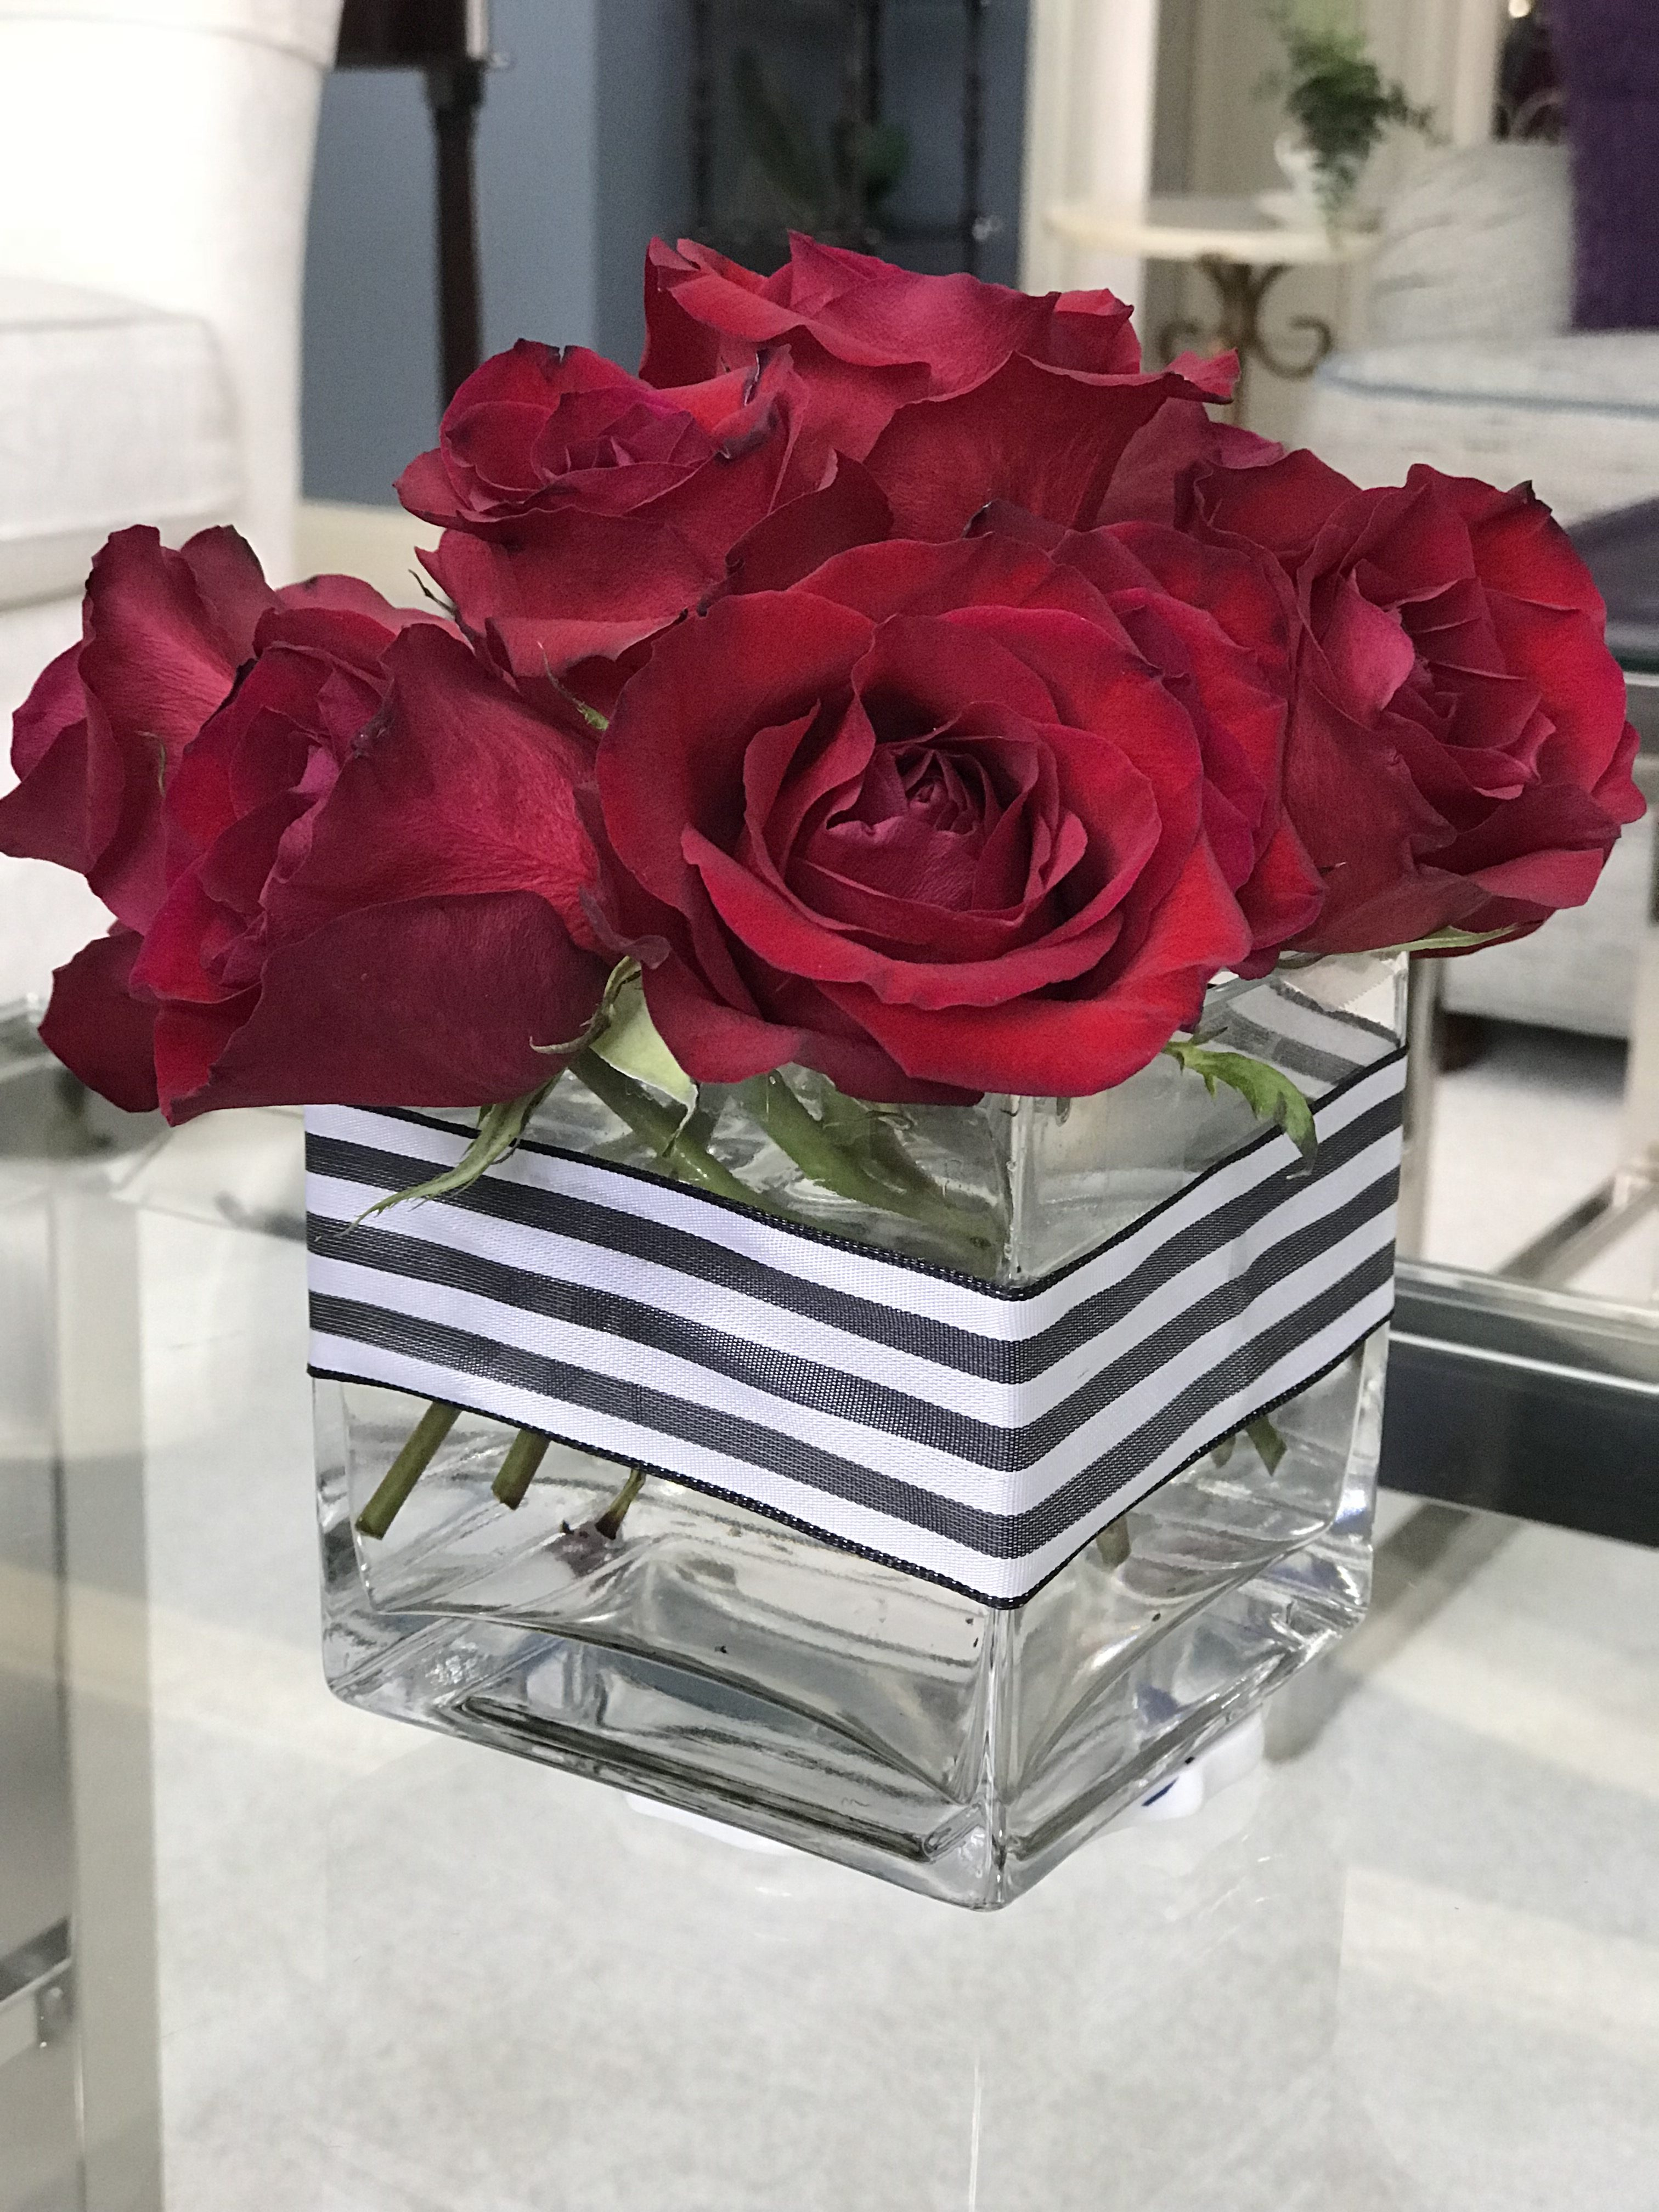 Use this method to make pretty flower arrangements